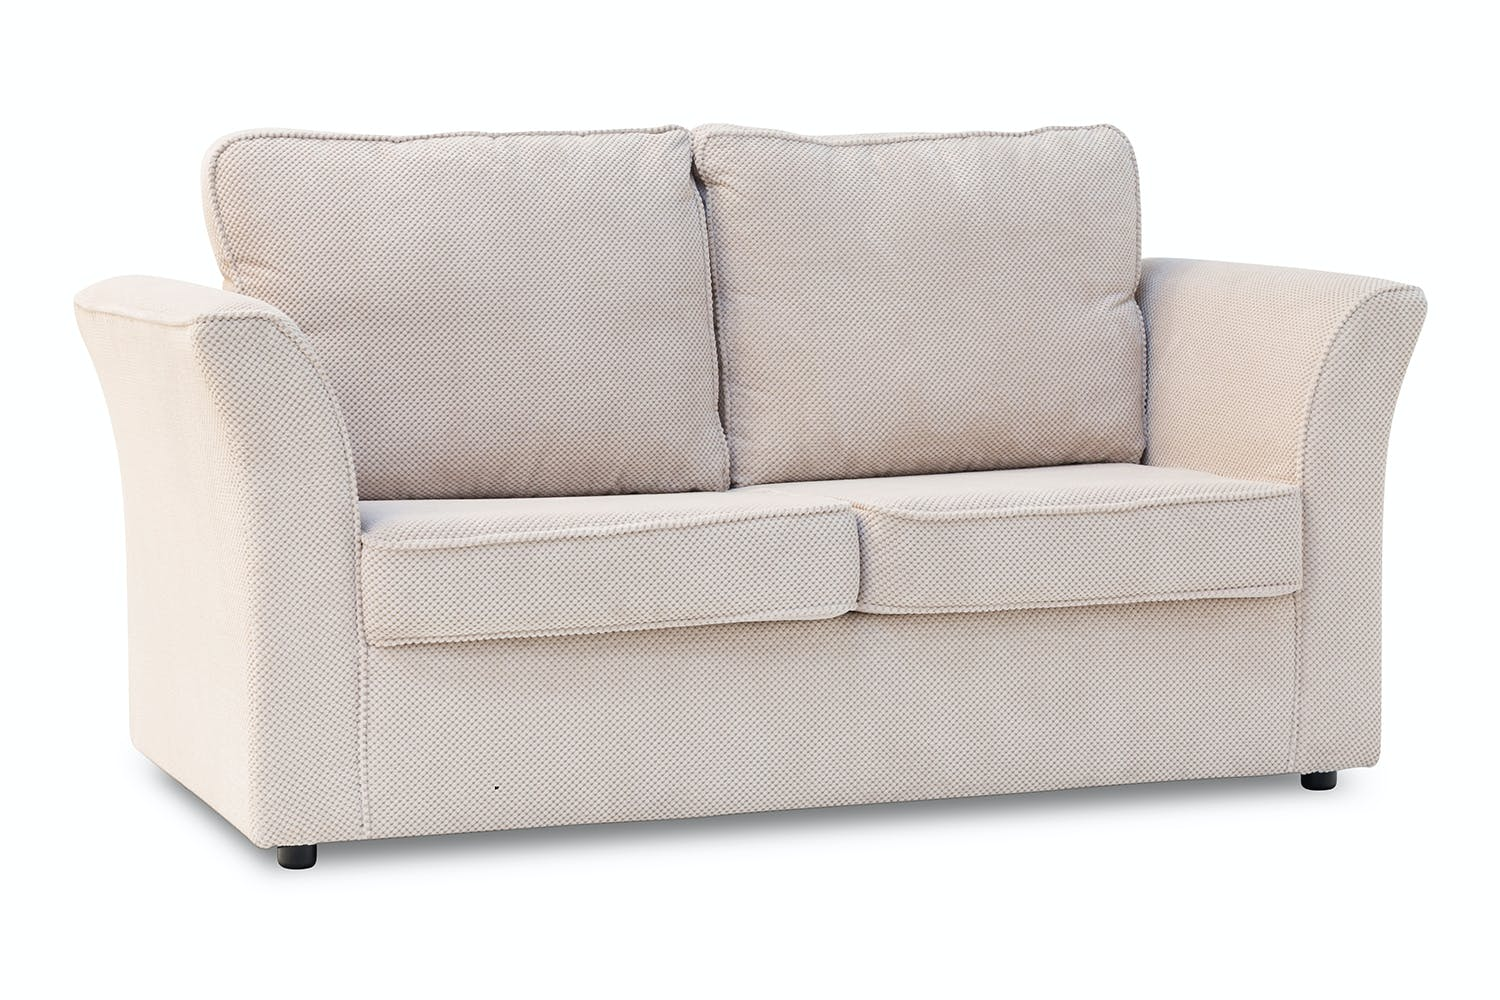 Nexus Sofa Bed | 2 Seater